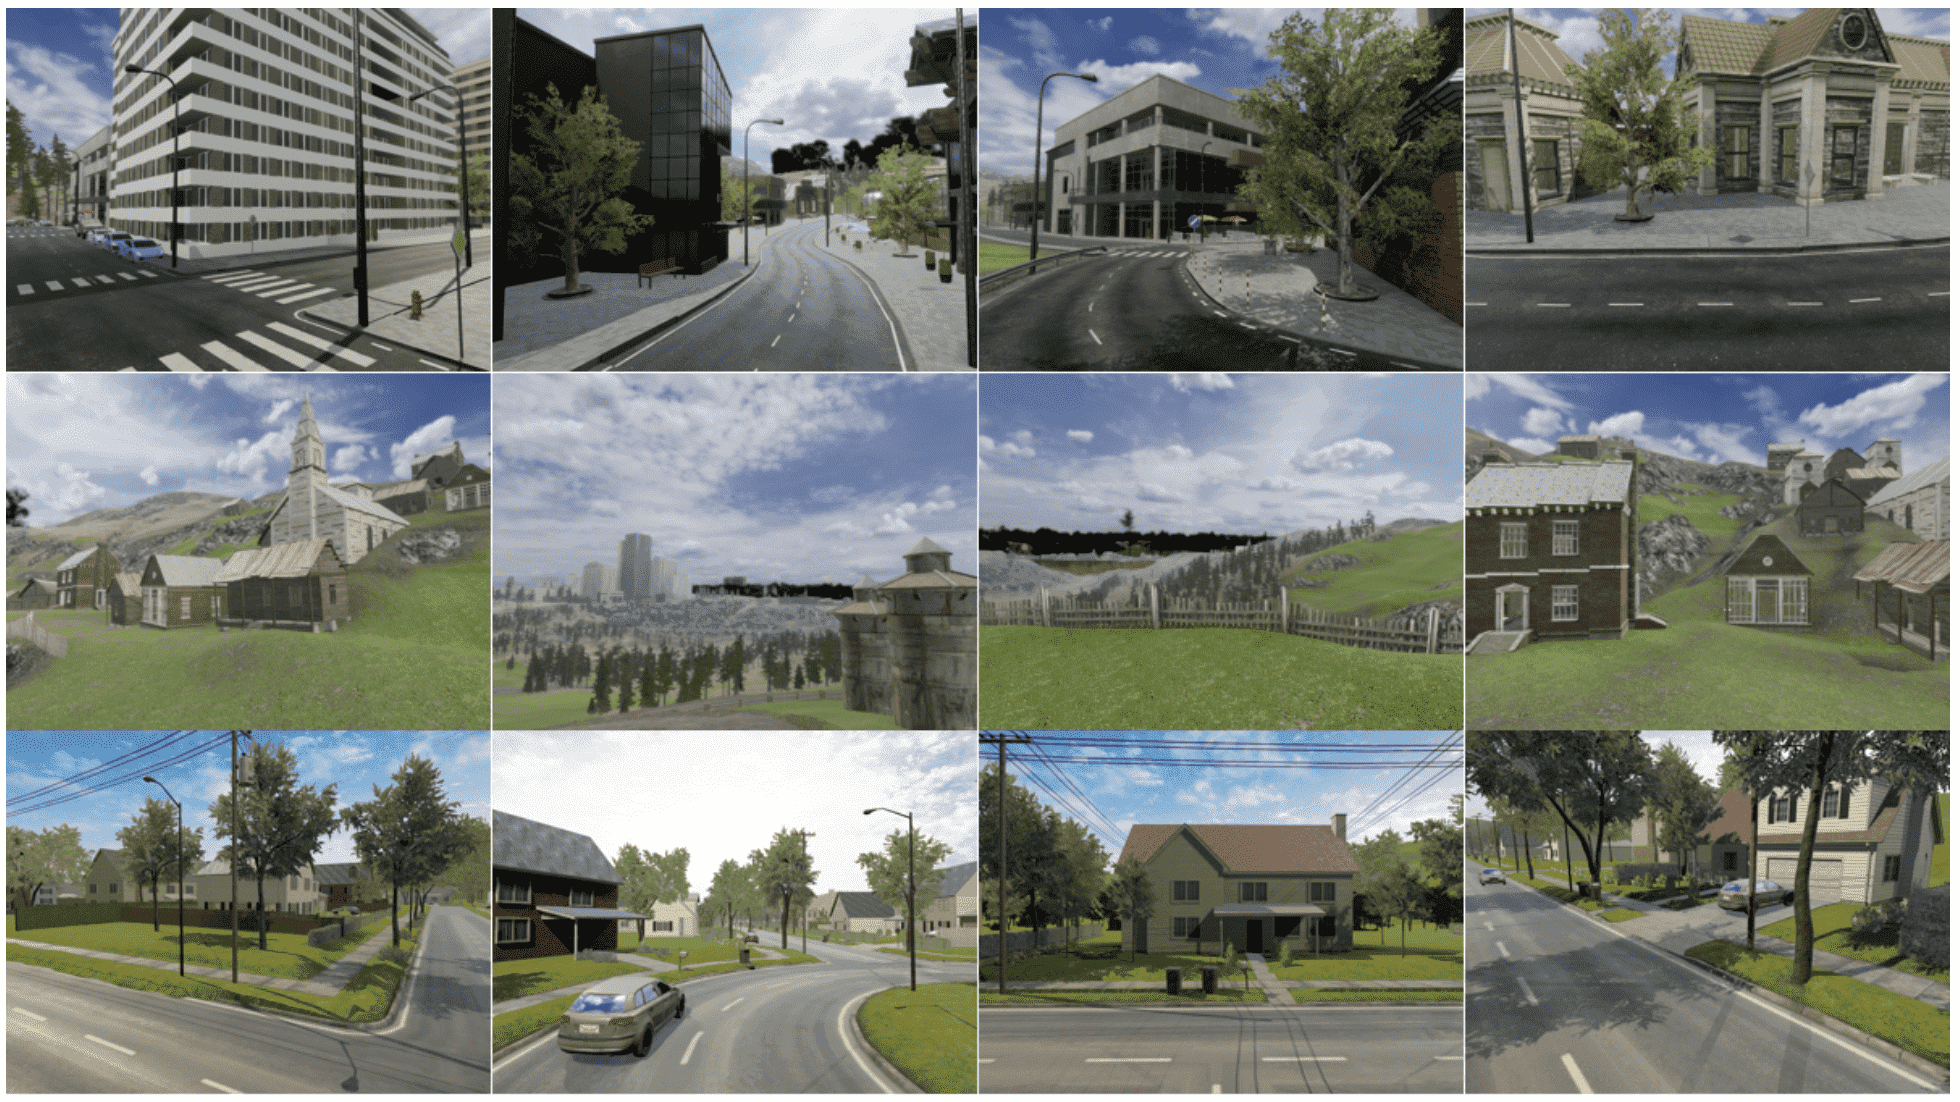 Samples from our simulated dataset in urban (top row), rural (middle row), and suburban (bottom row) areas.